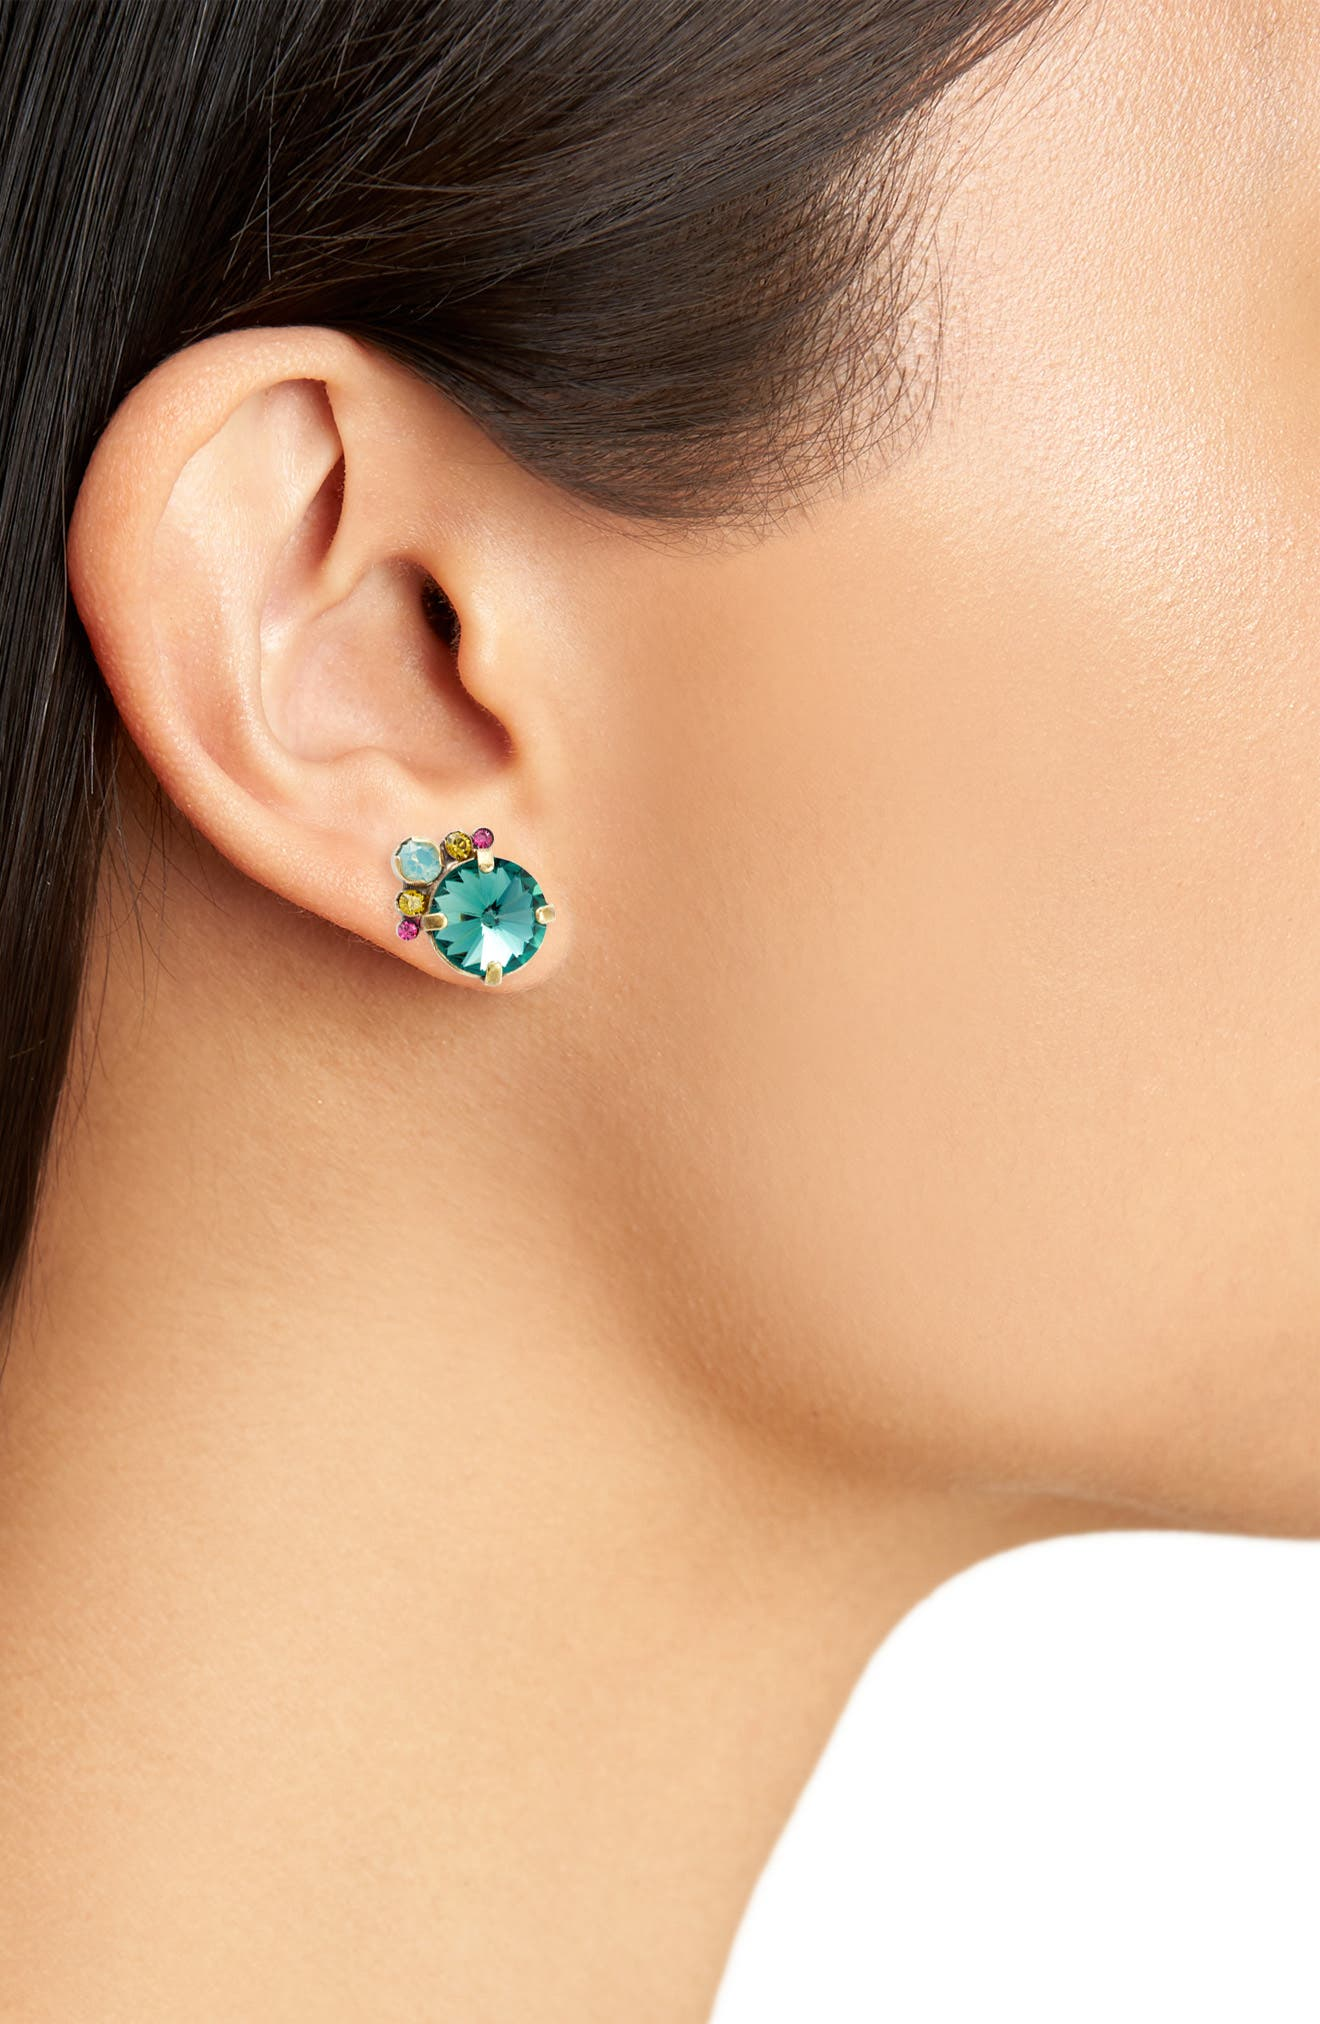 Regal Rounds Crystal Earrings,                             Alternate thumbnail 2, color,                             Blue-Green